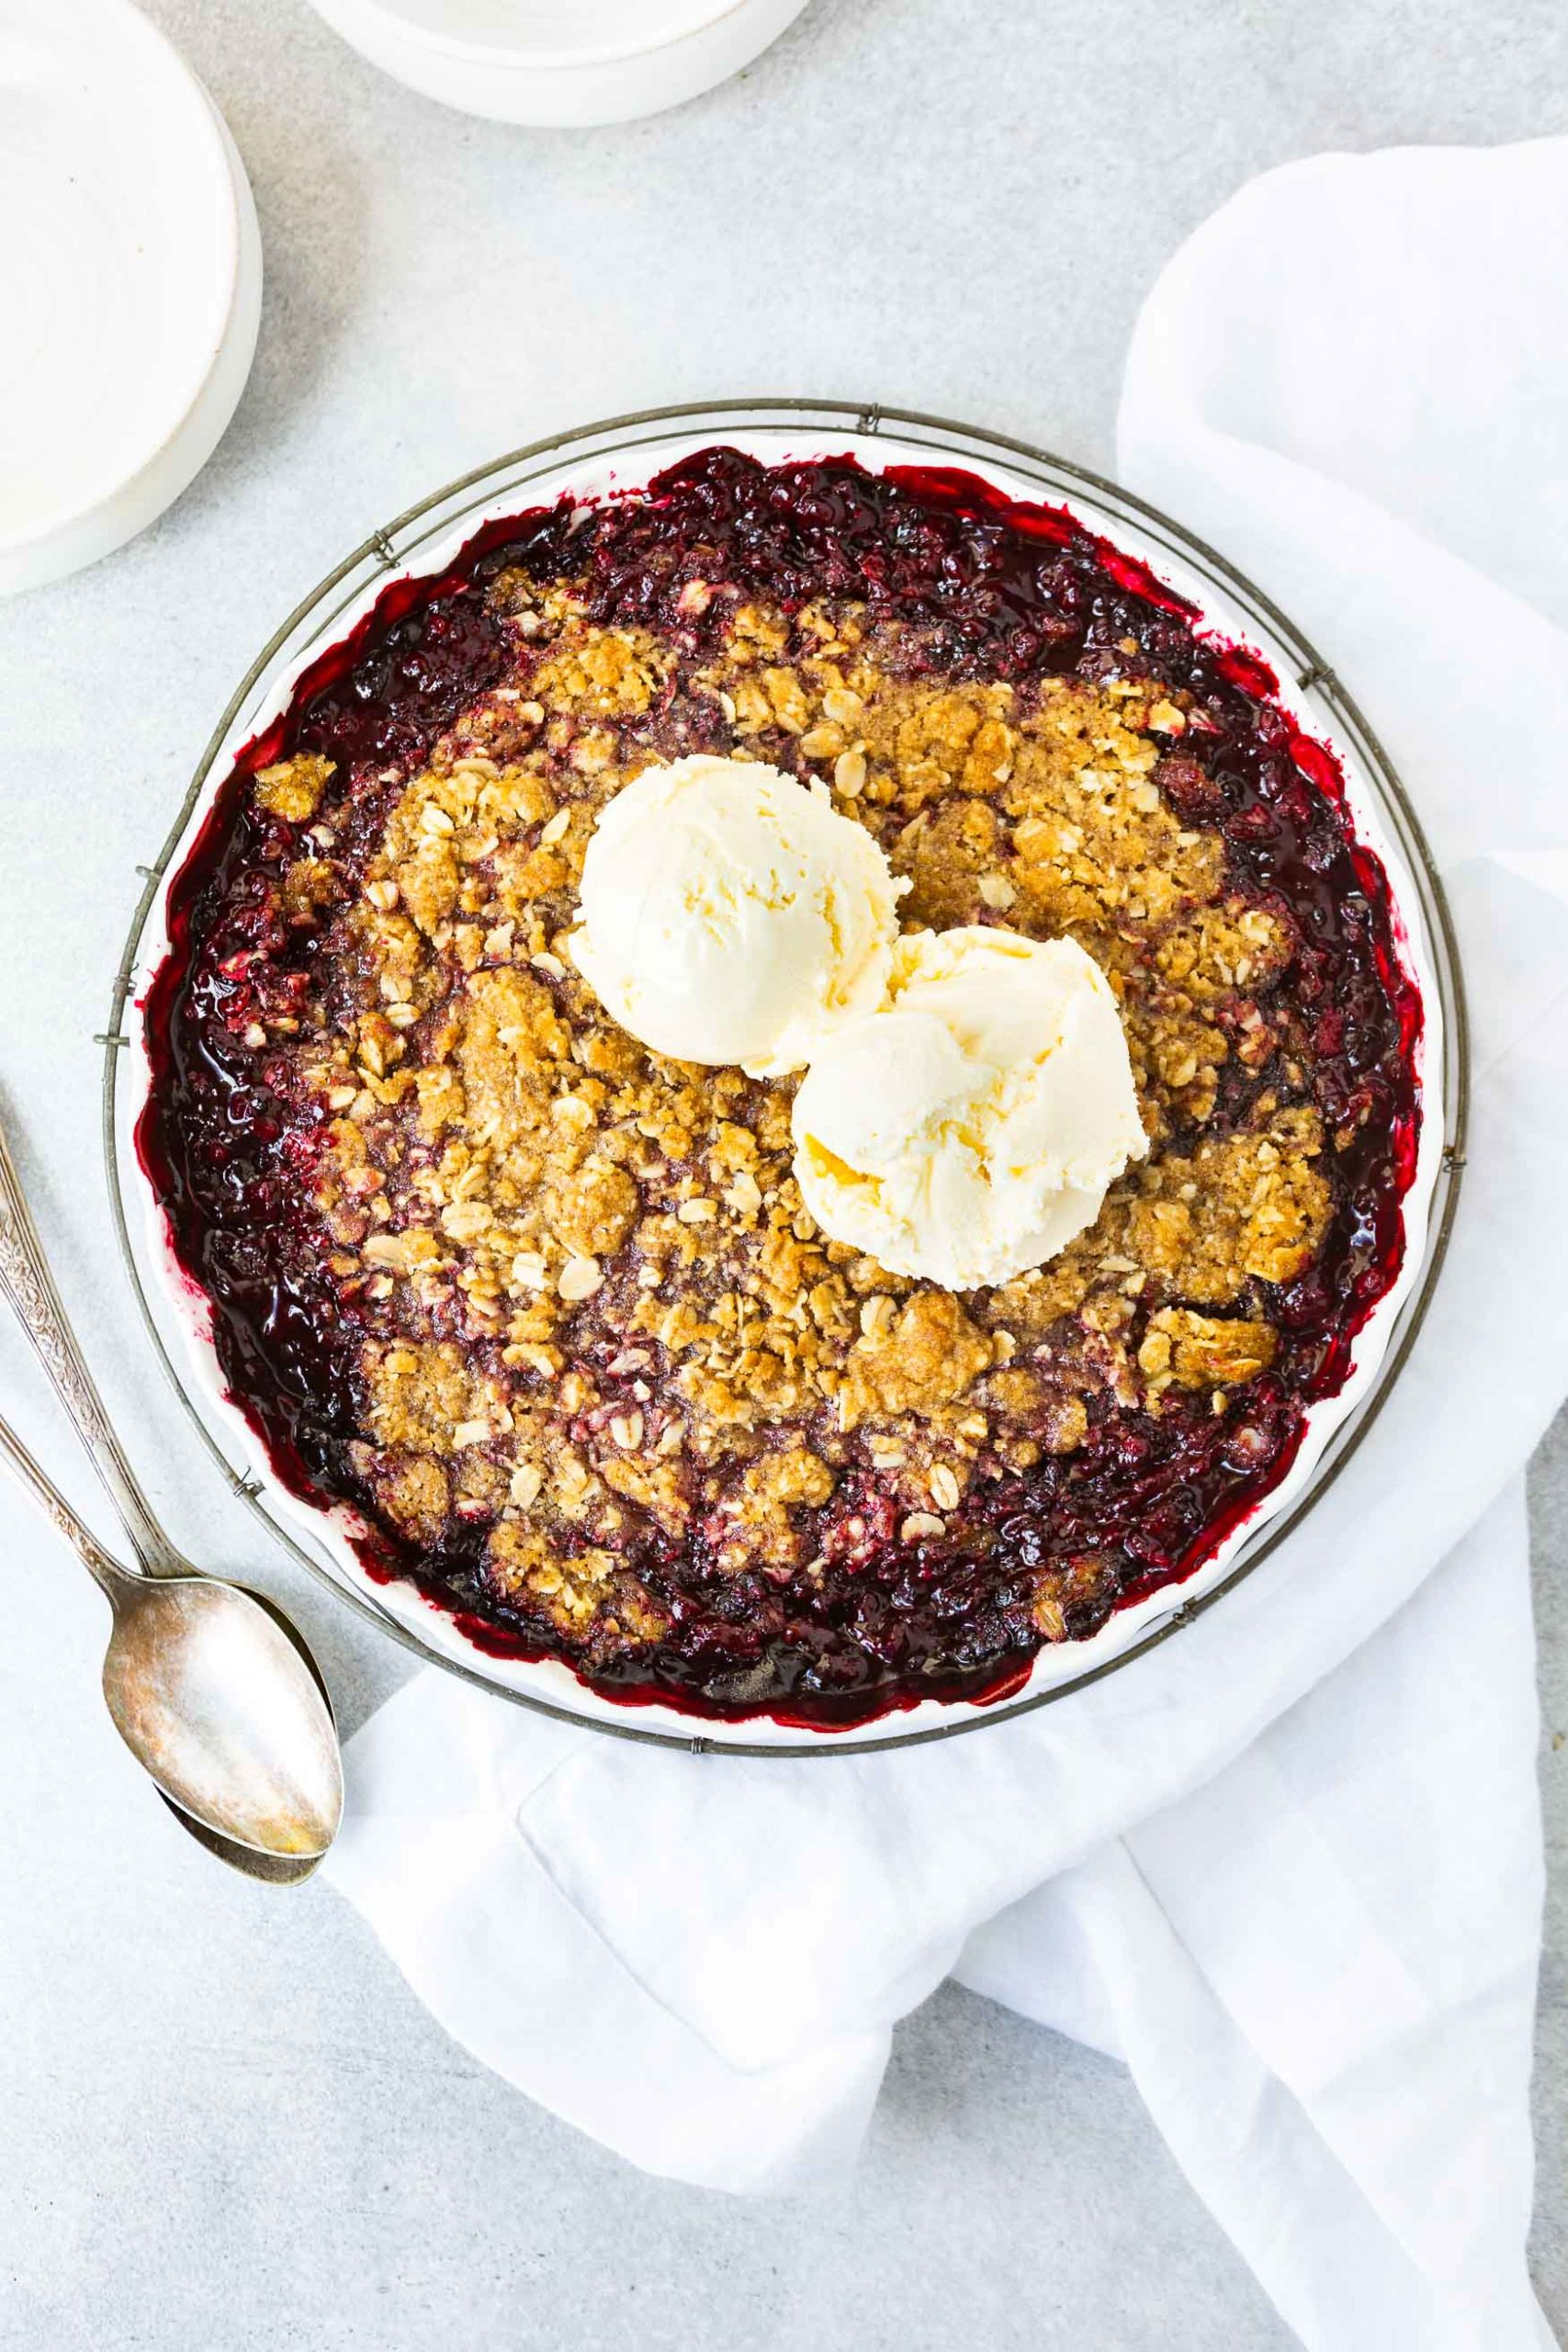 a photo of a whole pan of marionberry crisp topped with two scoops of vanilla ice cream. the pan is circular with a large silver serving spoon sitting next to the pan.